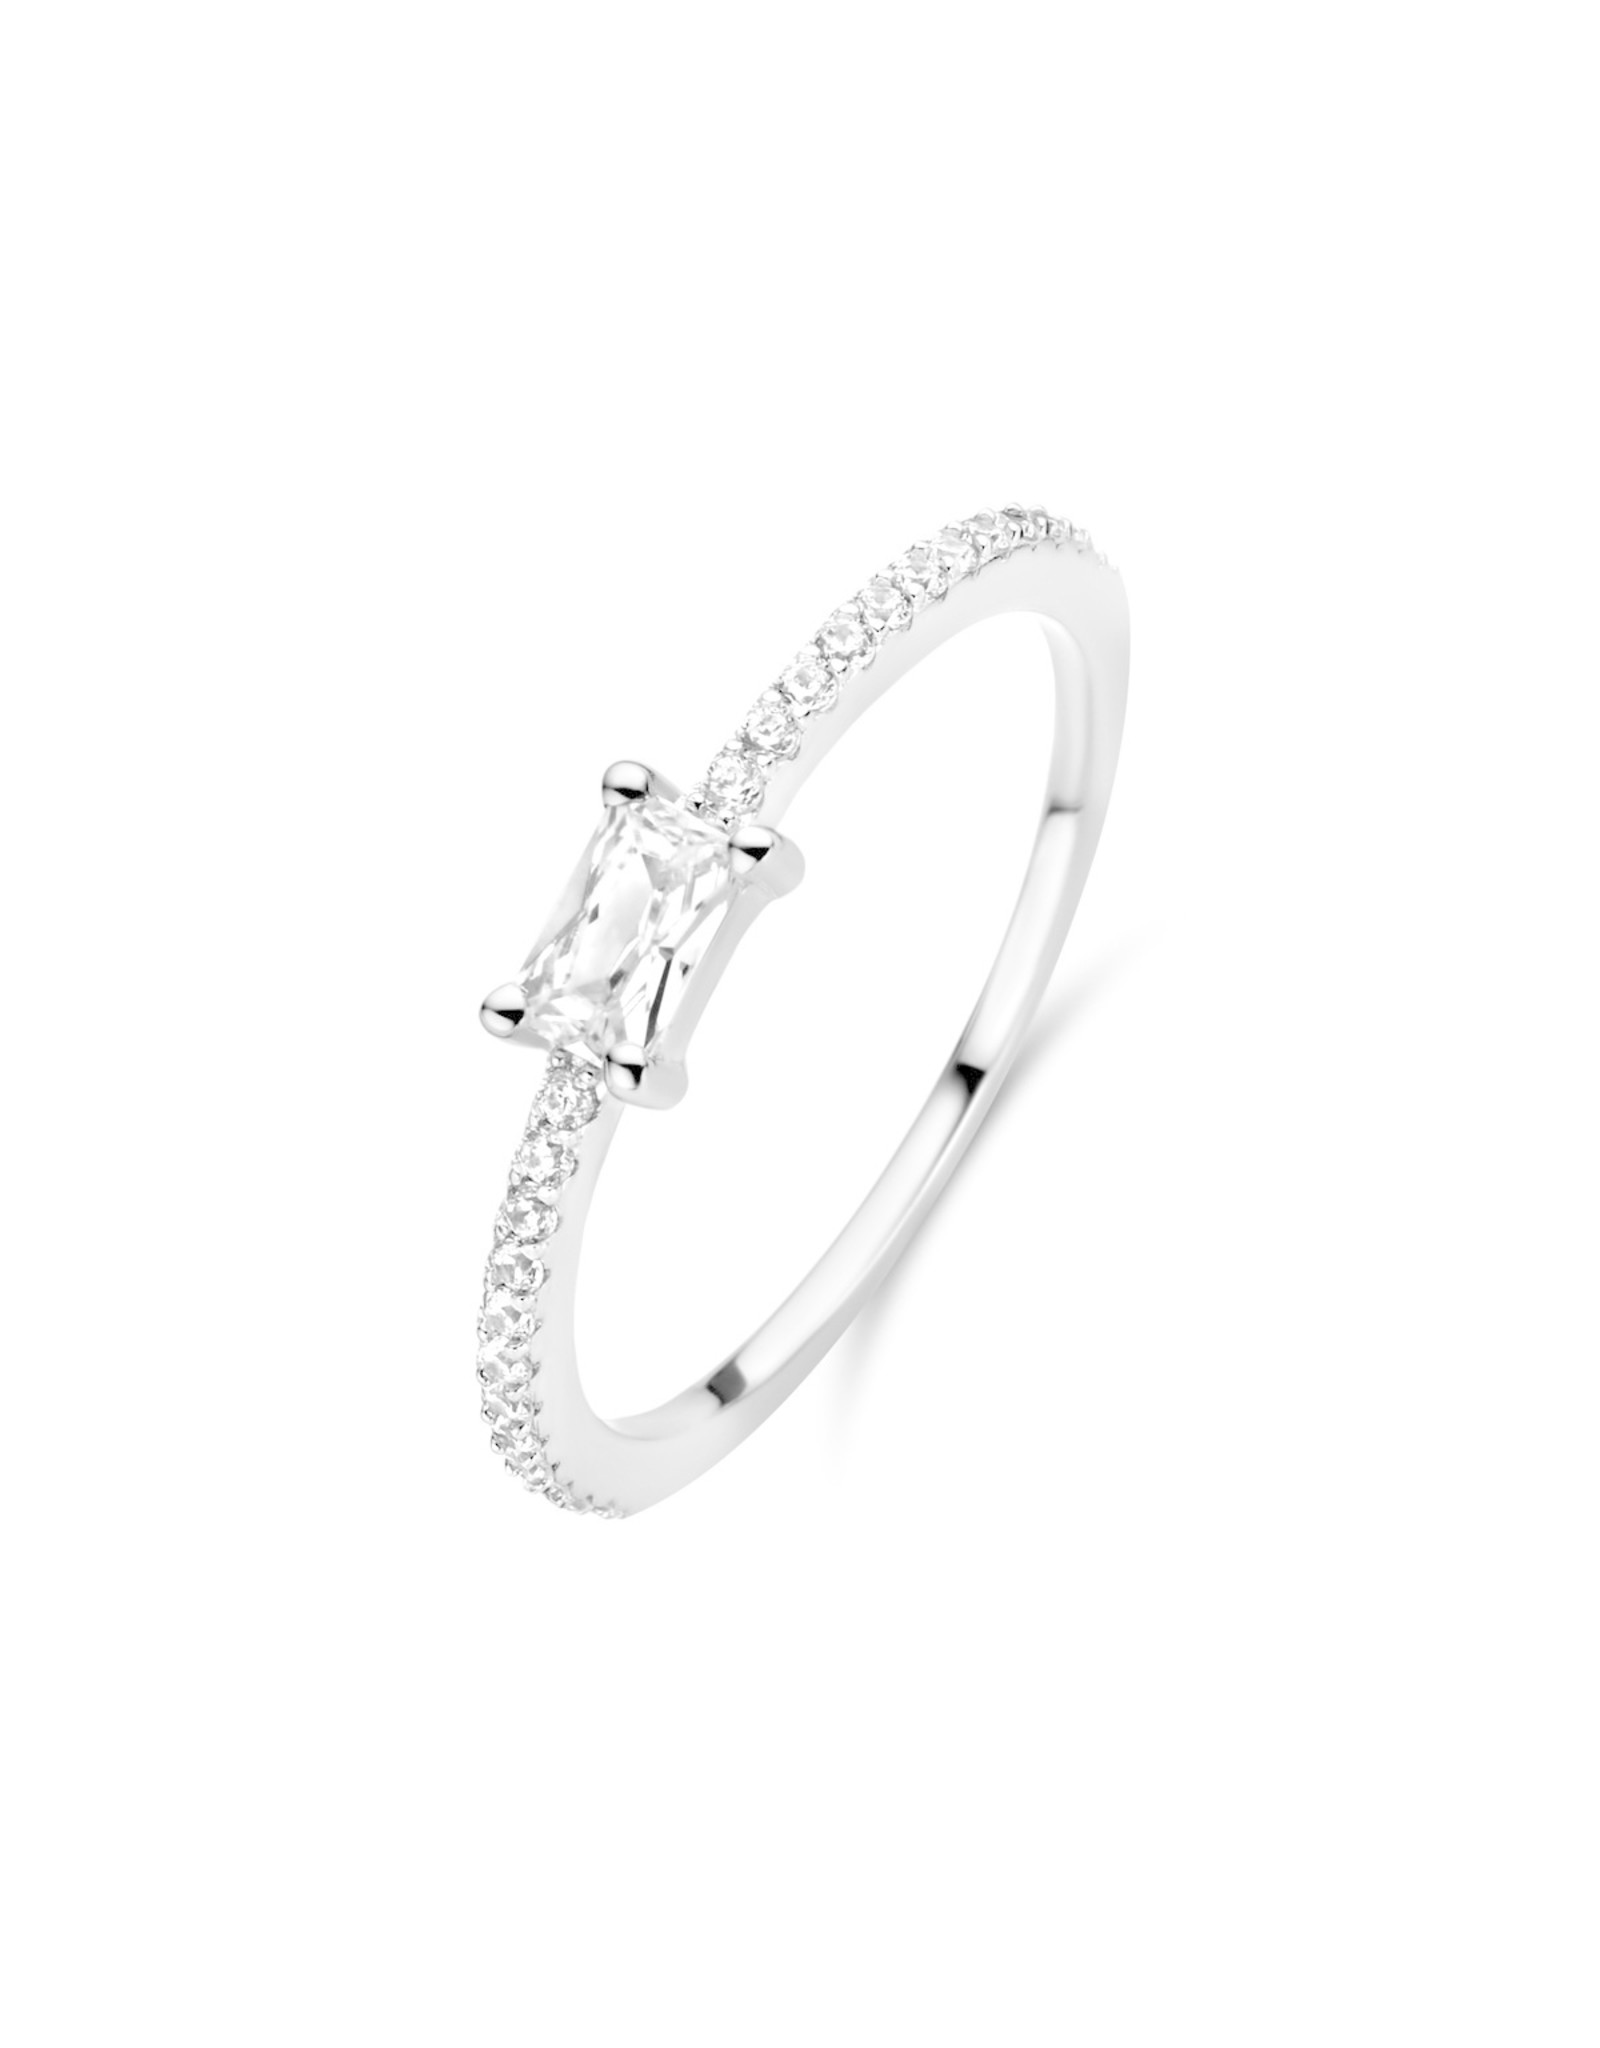 Ring Solitaire Naiomy Moments B0O02 Zilver